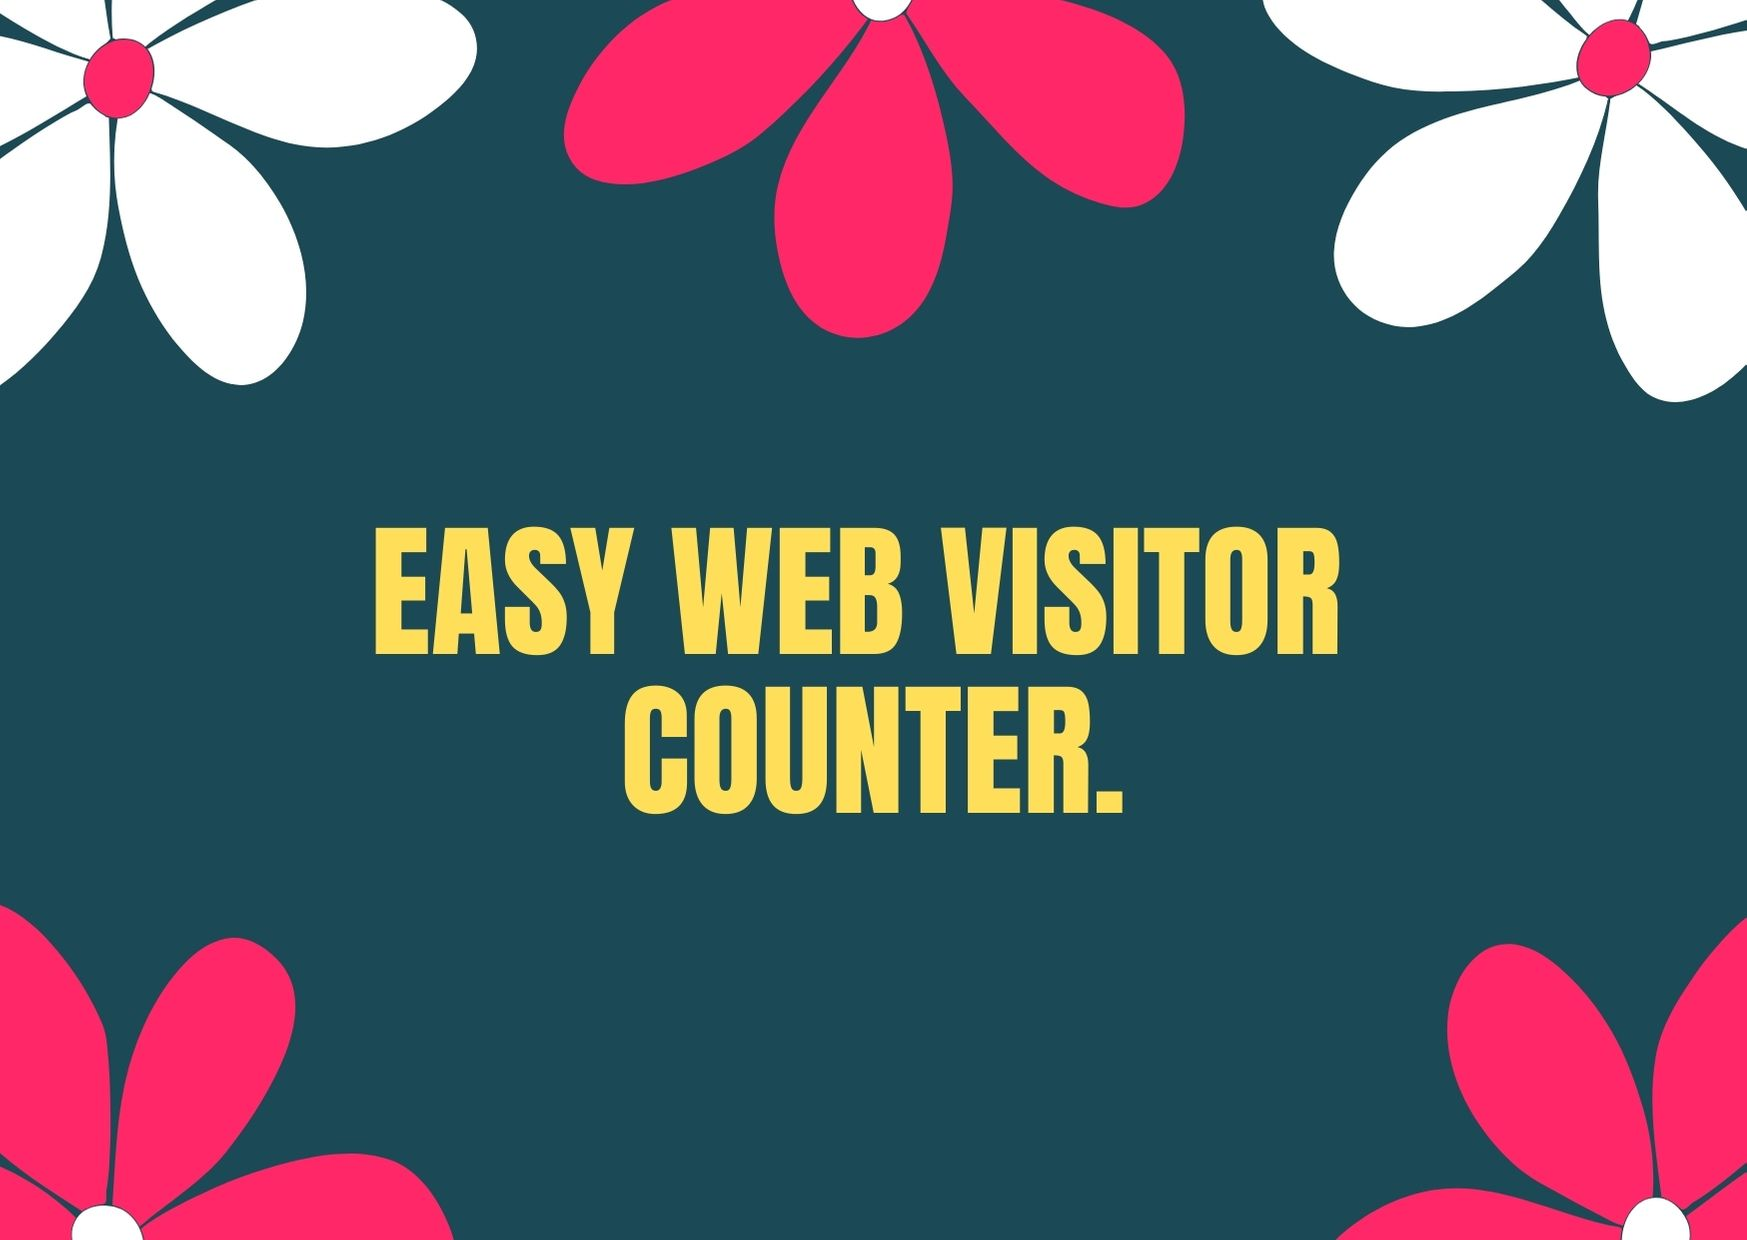 100 free Easy Web Visitor Counter 2021